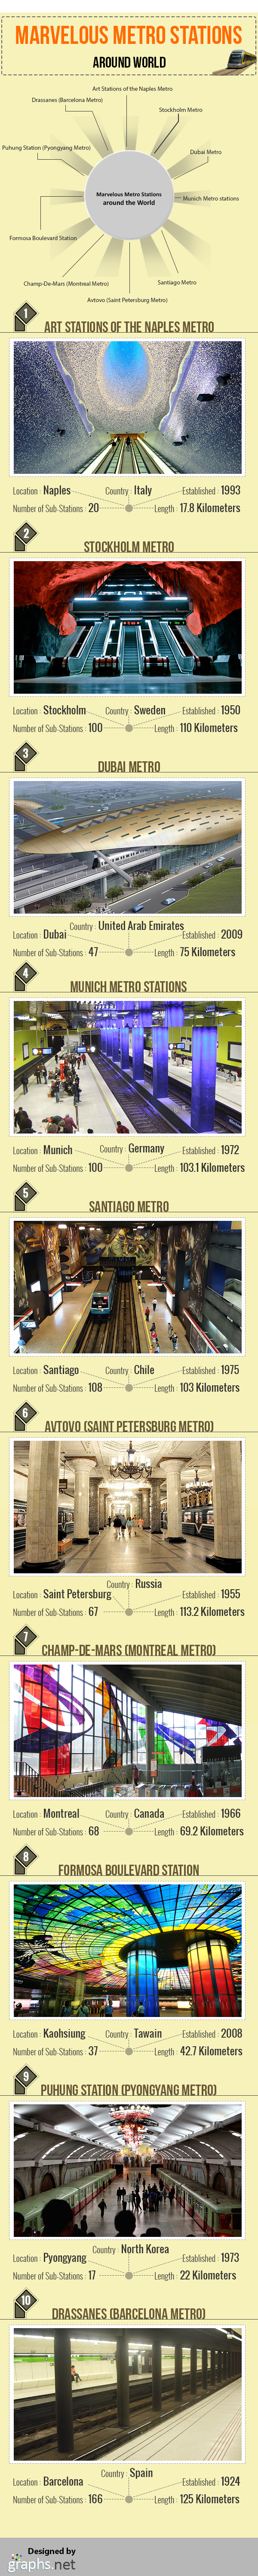 Marvelous Metro Stations in the World